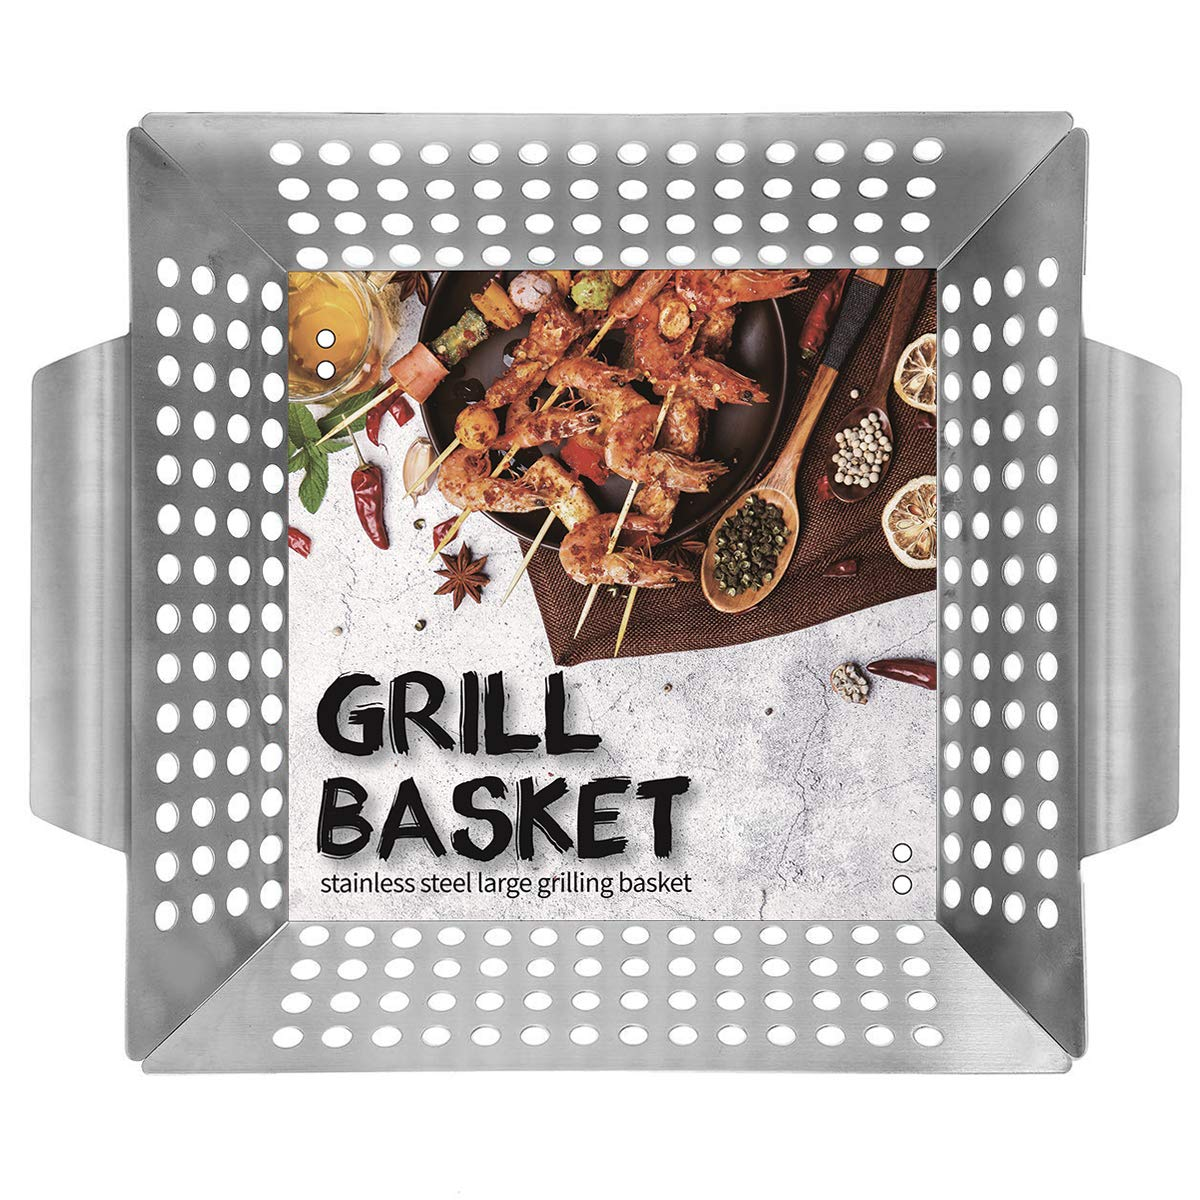 """Ranphykx Vegetable Grill Basket - BBQ Grilling Basket (Large 12""""x12""""x3"""") for Veggies, Kabobs, Seafood, Meats - Stainless Steel"""